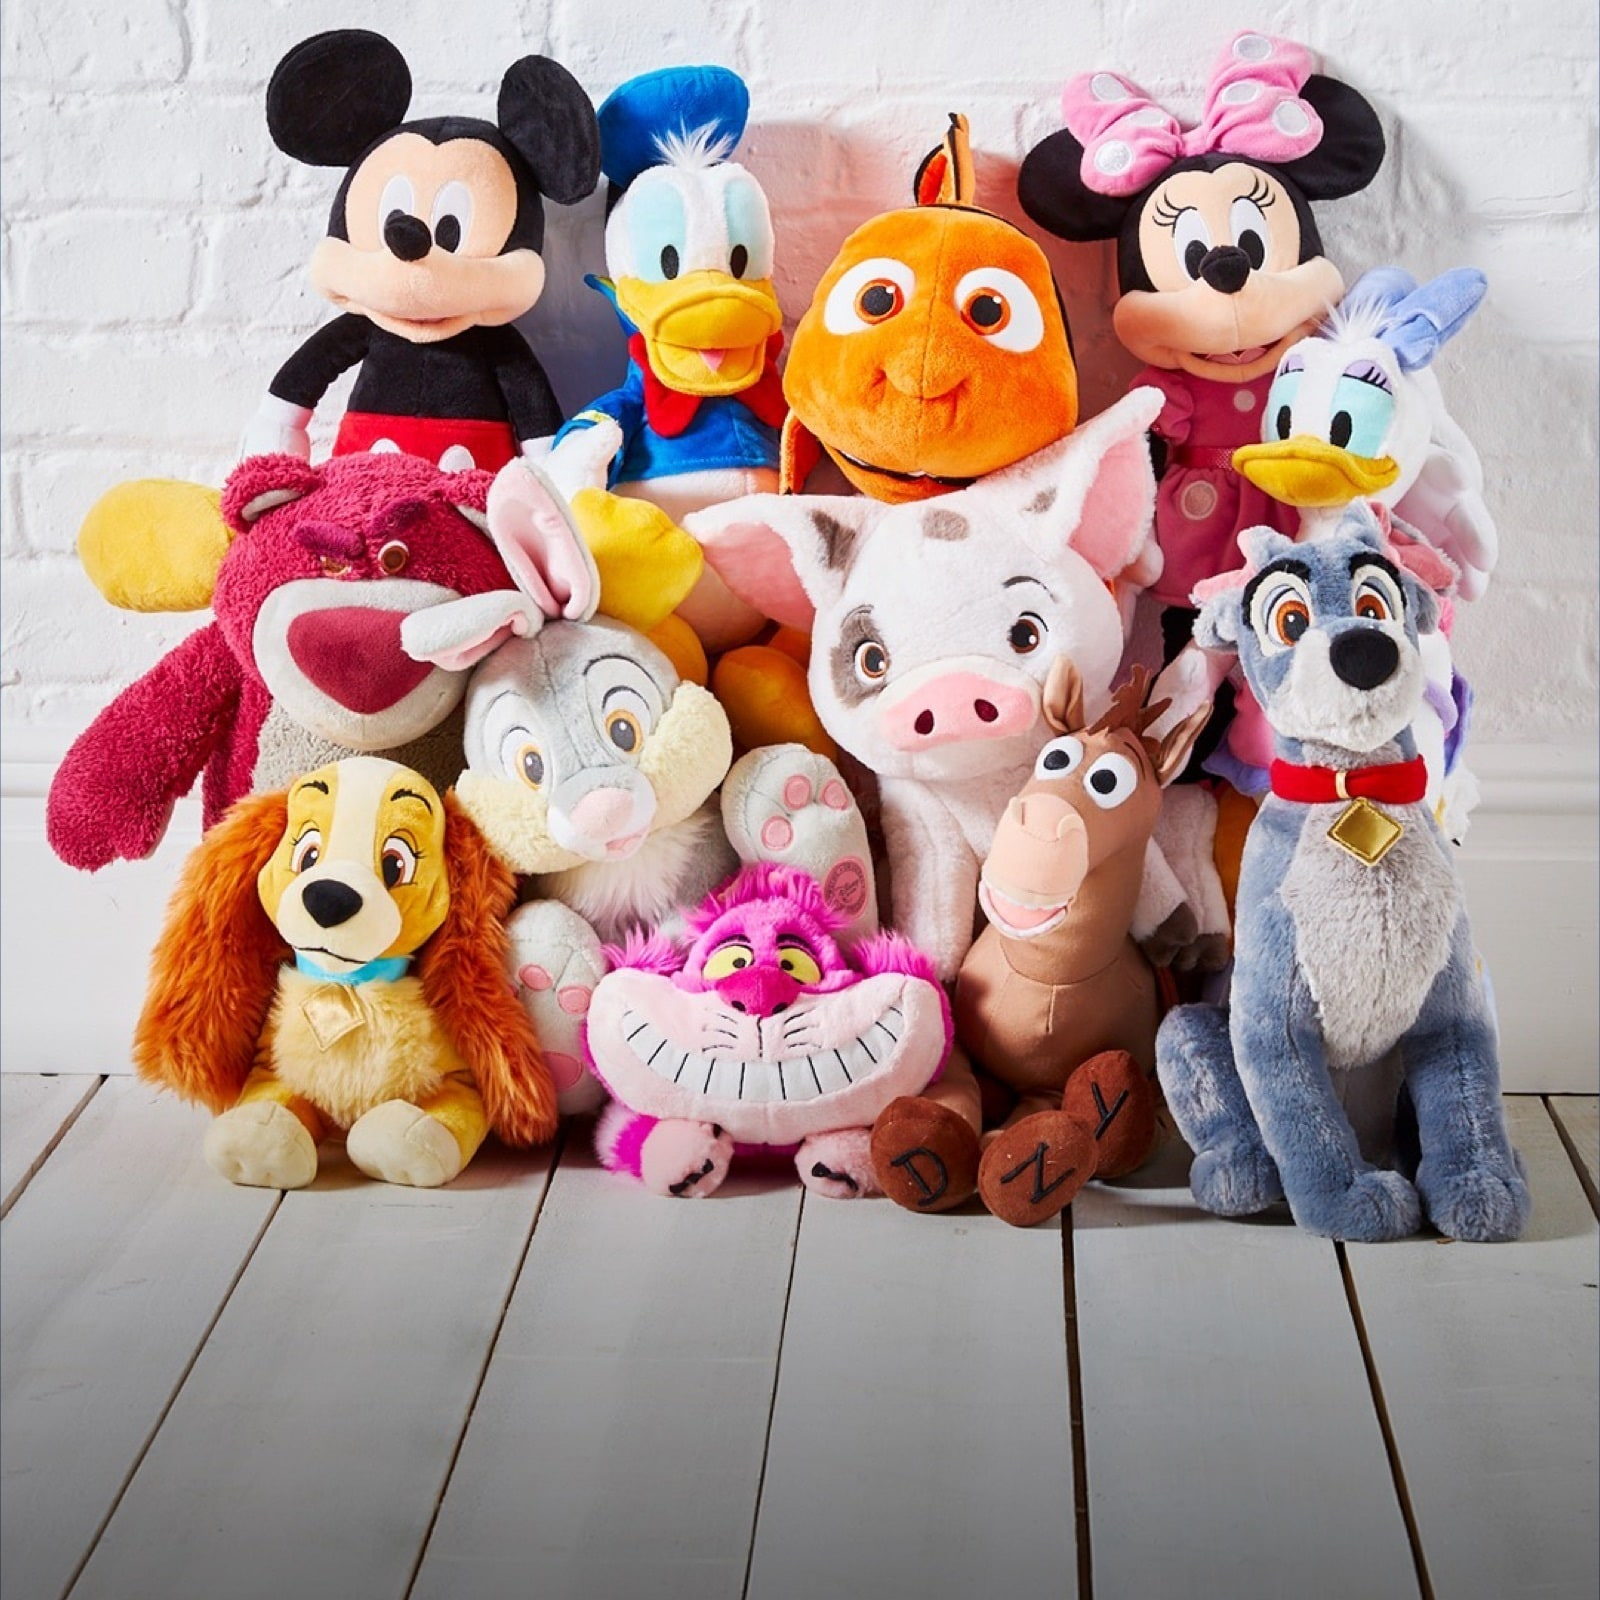 A selection of medium soft toys